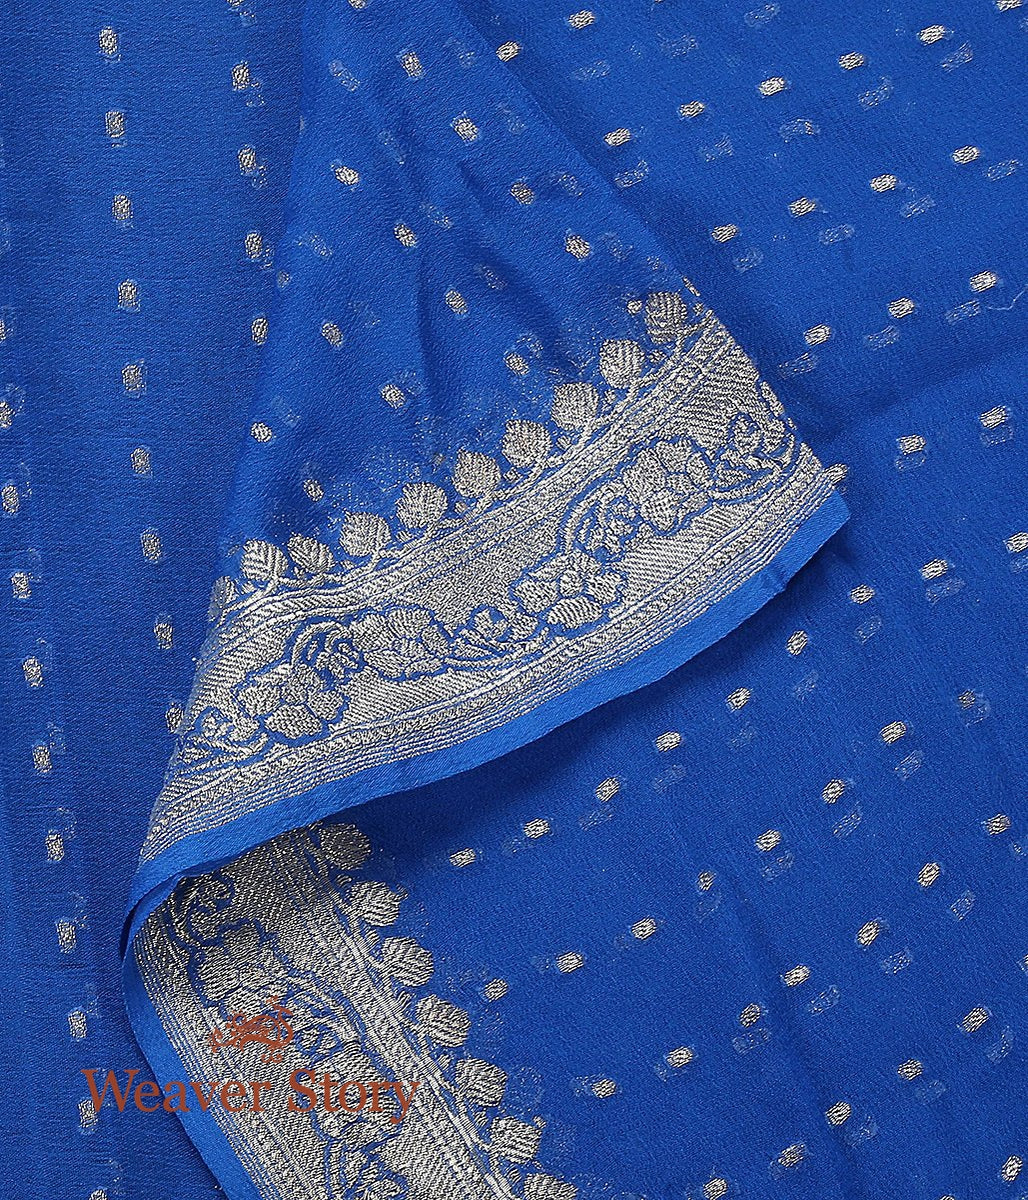 Handwoven Blue Georgette Dupatta with Silver Zari